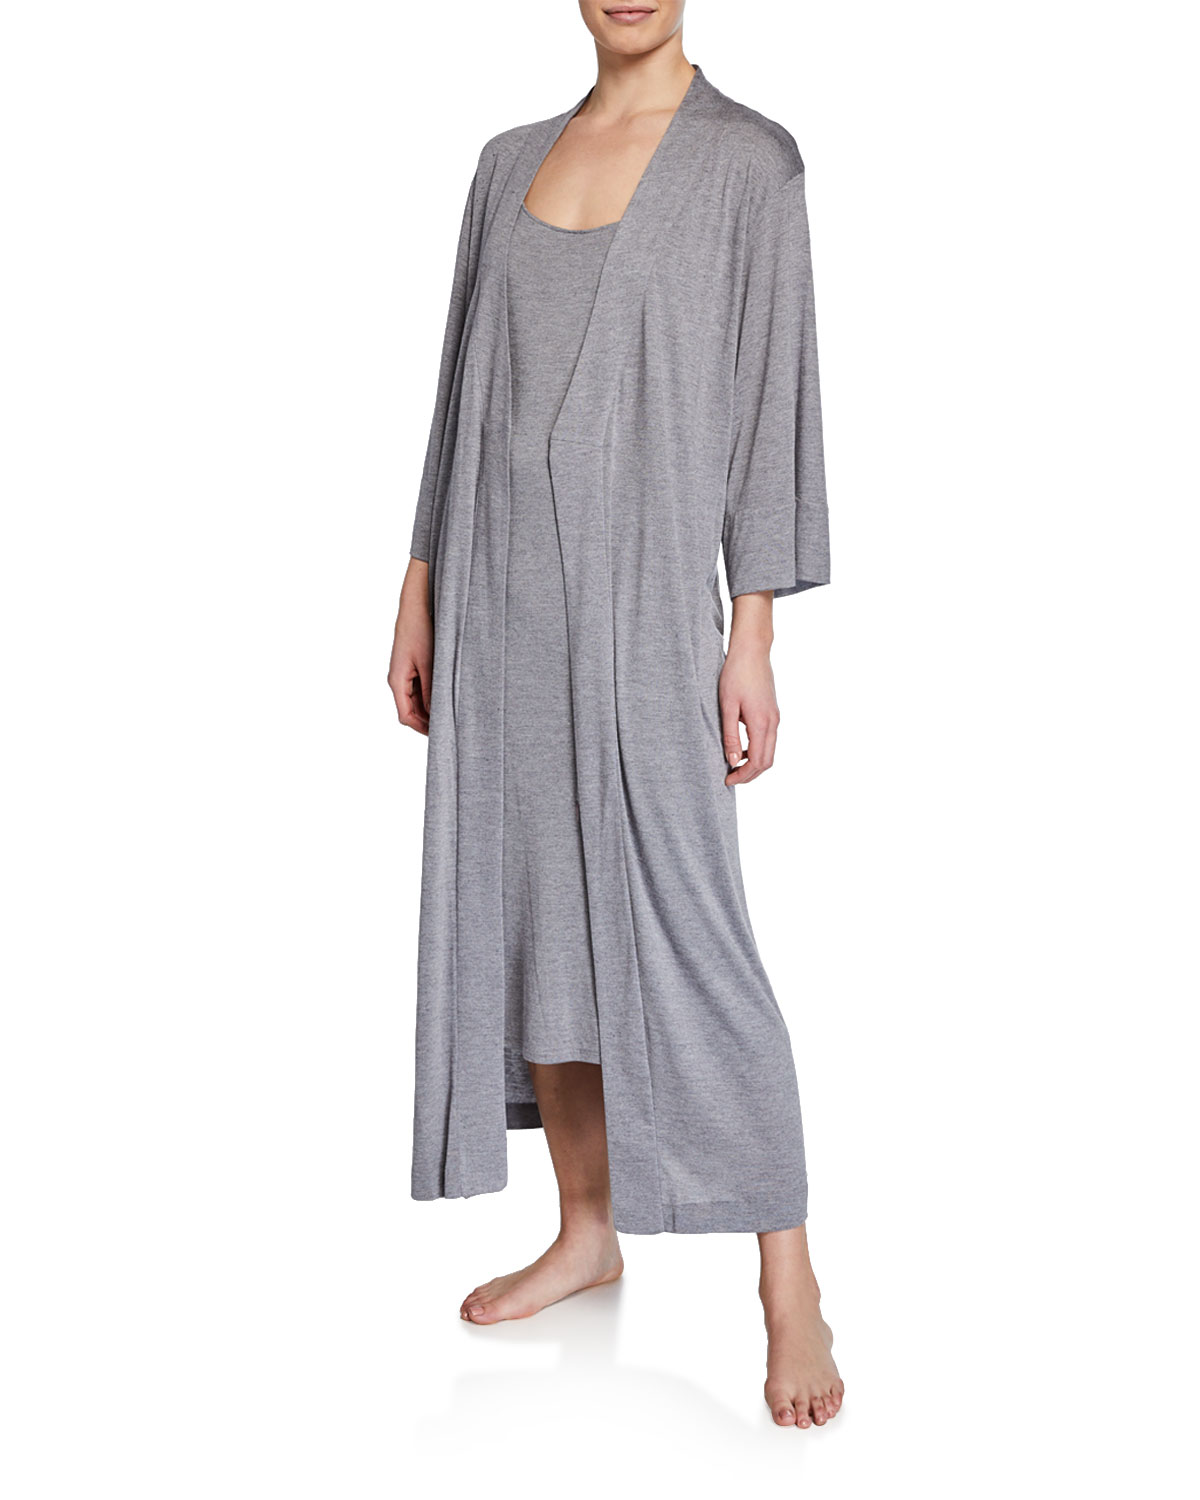 Shangri-La Long Robe